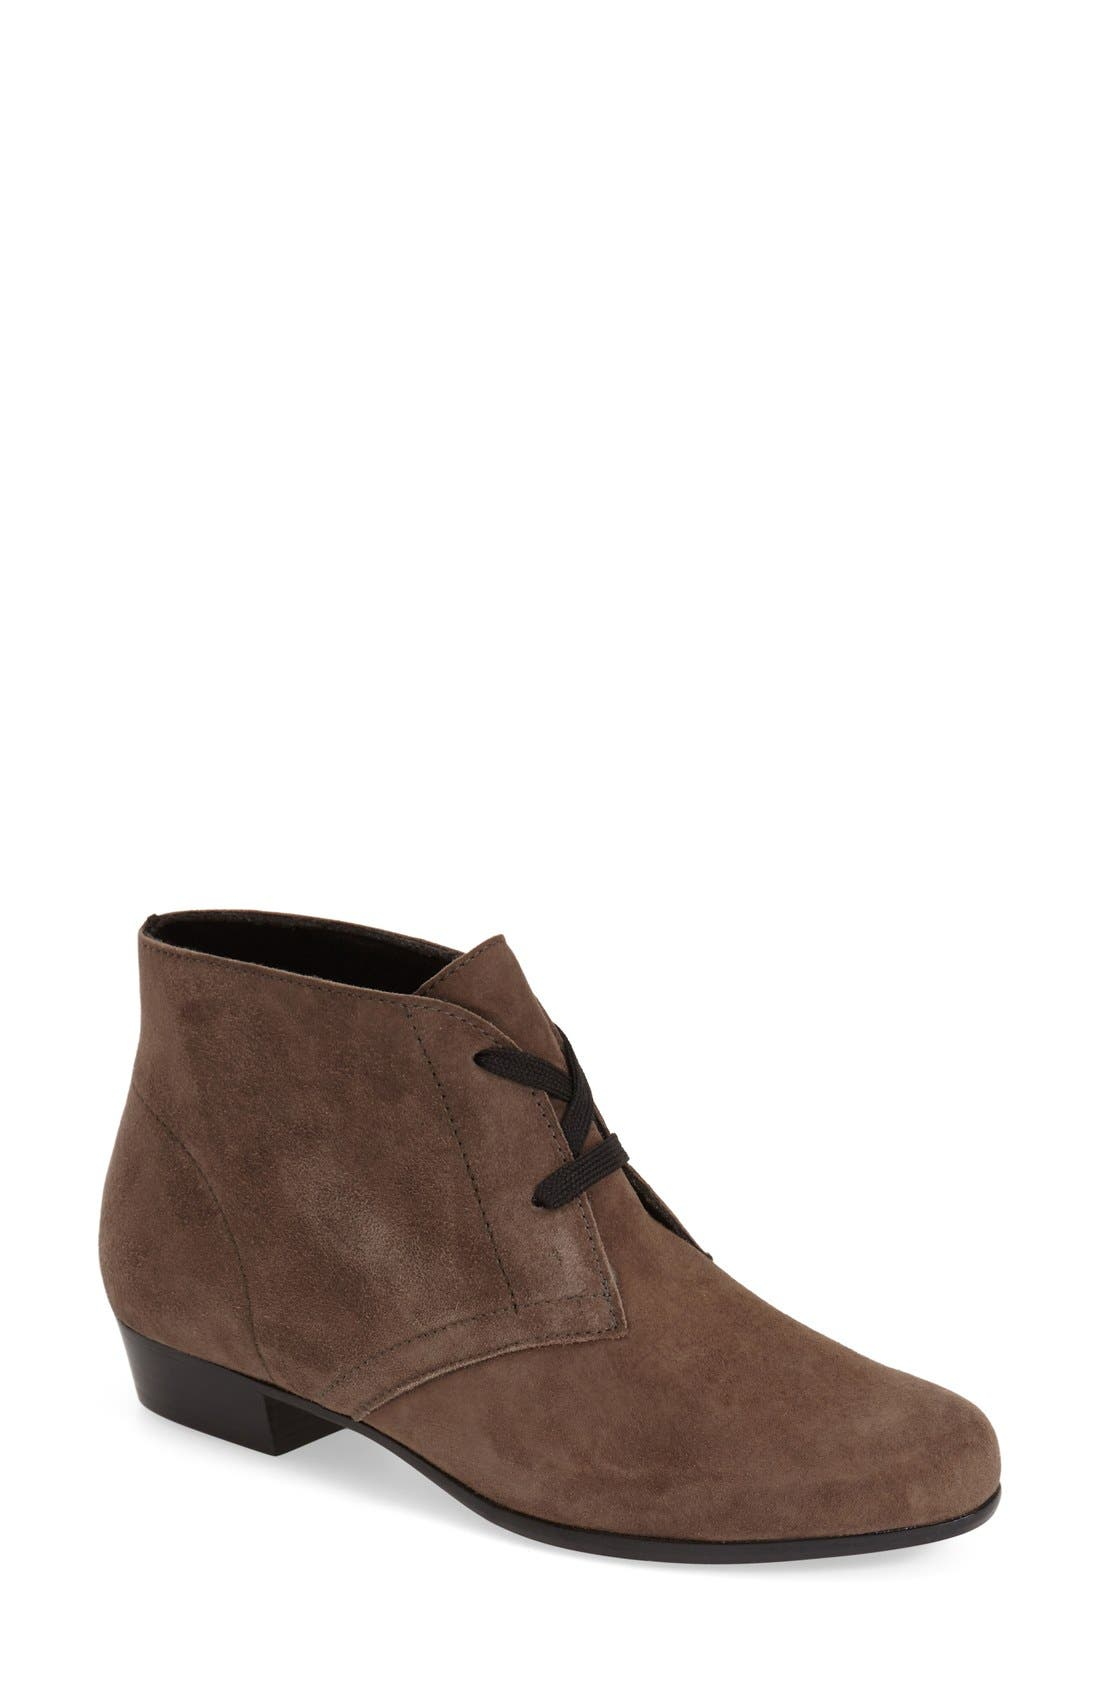 Alternate Image 1 Selected - Munro 'Sloane' Lace Up Bootie (Women)